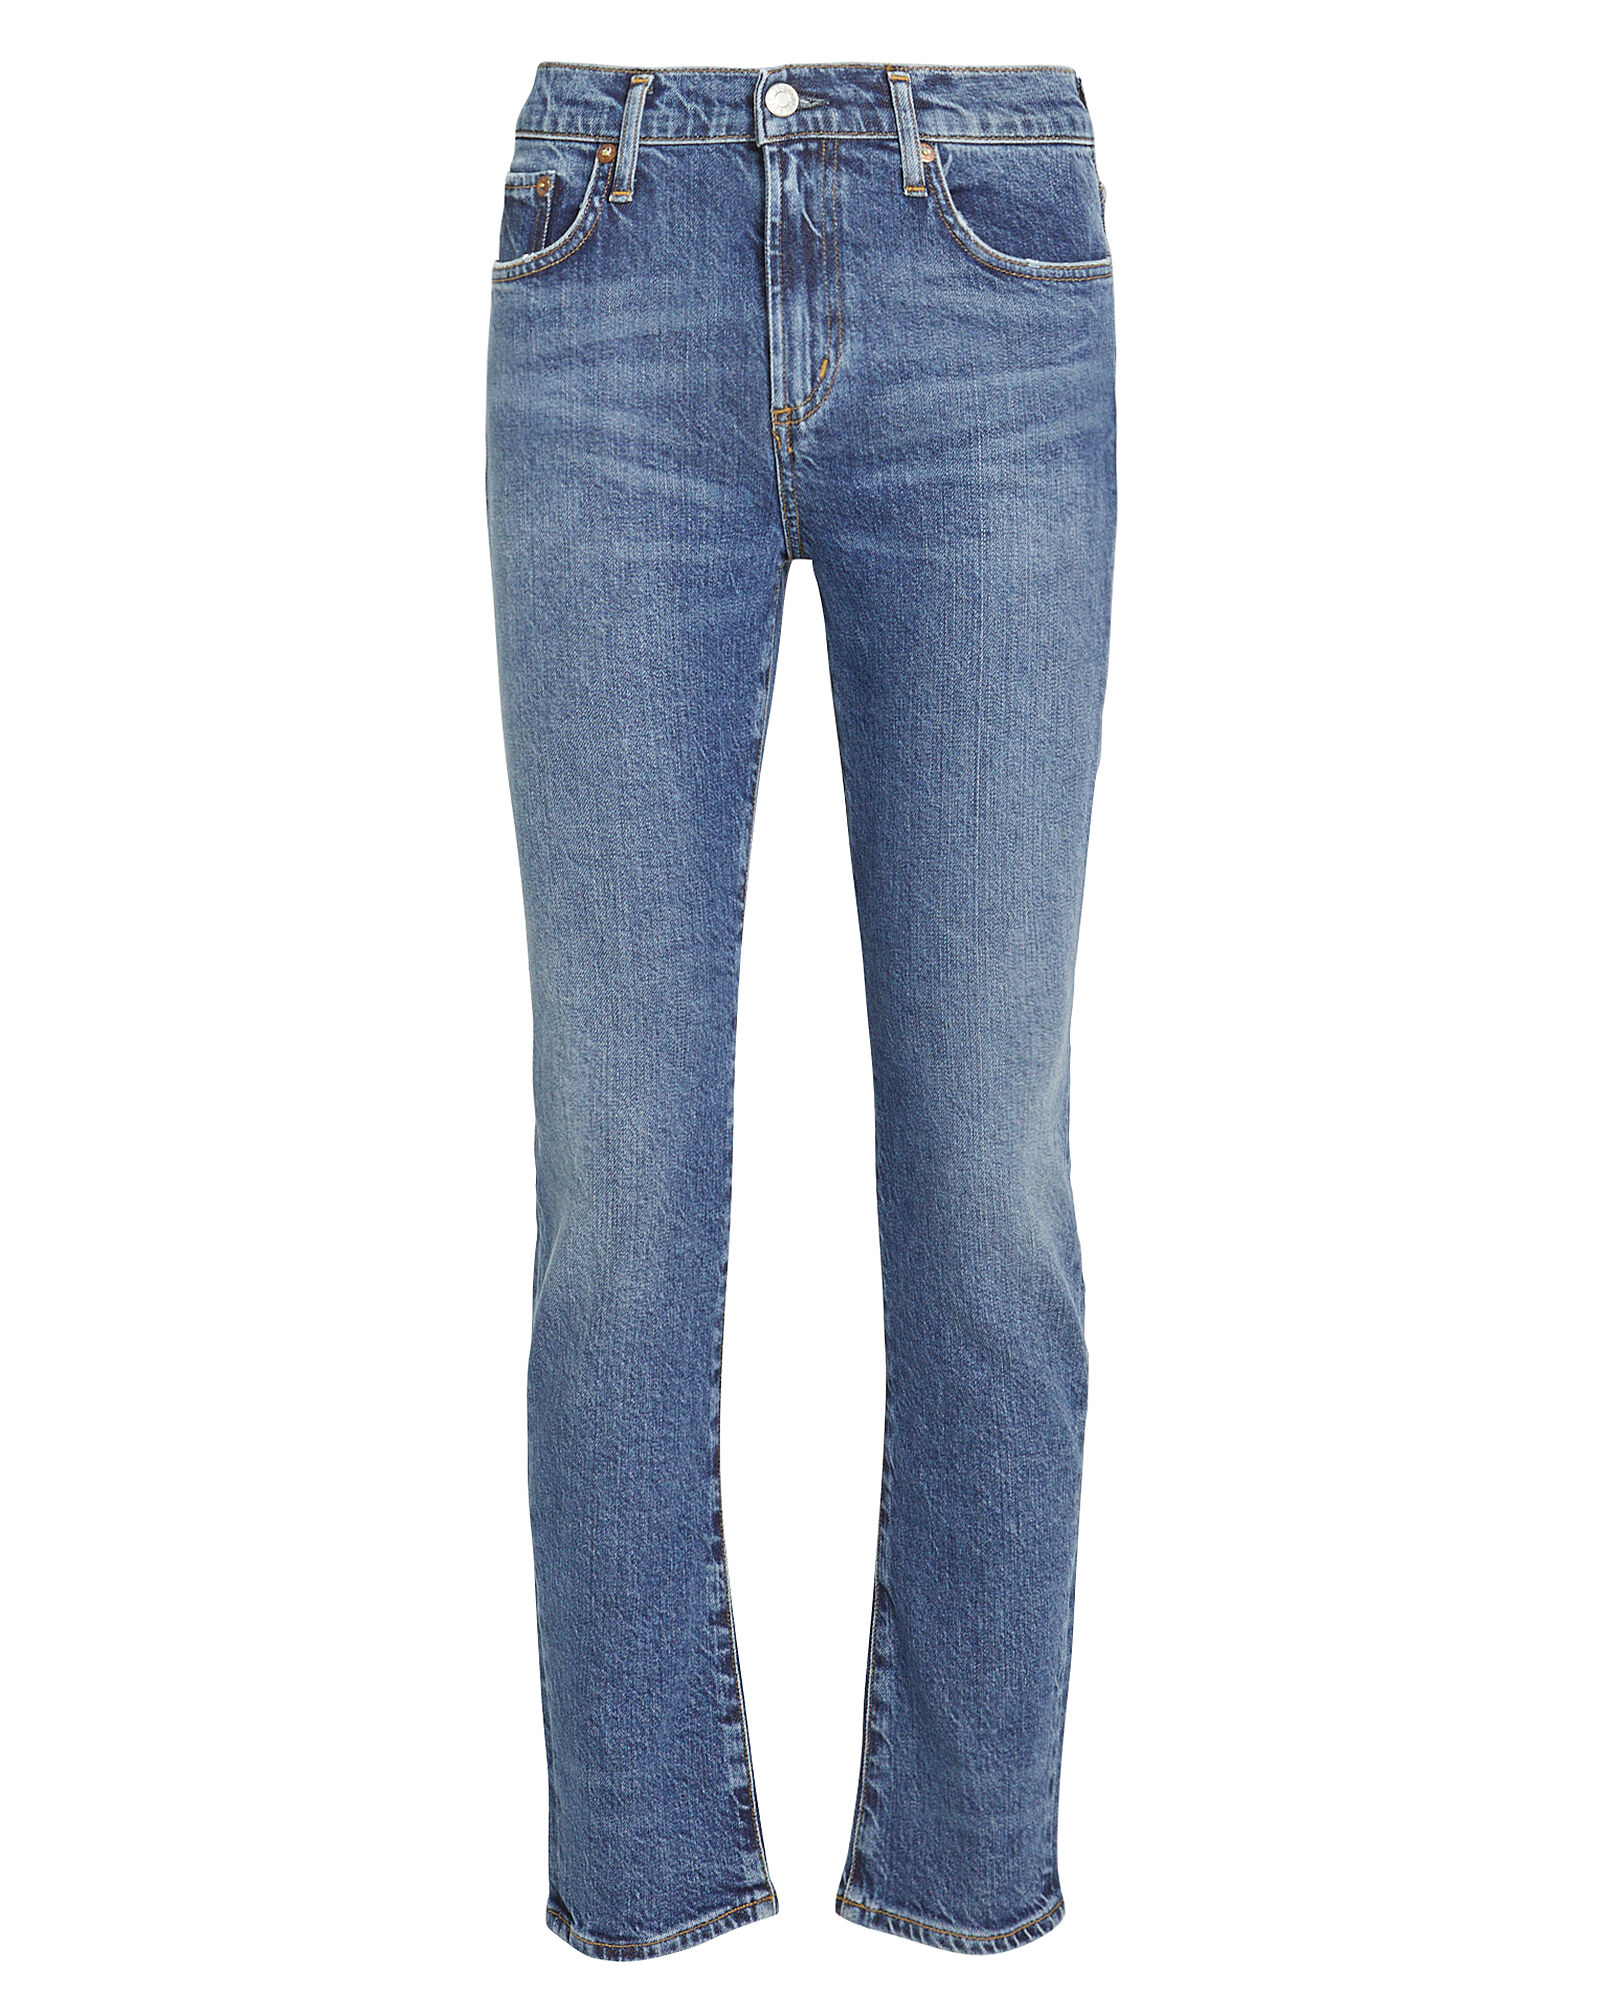 Toni High-Rise Straight Jeans, DENIM, hi-res